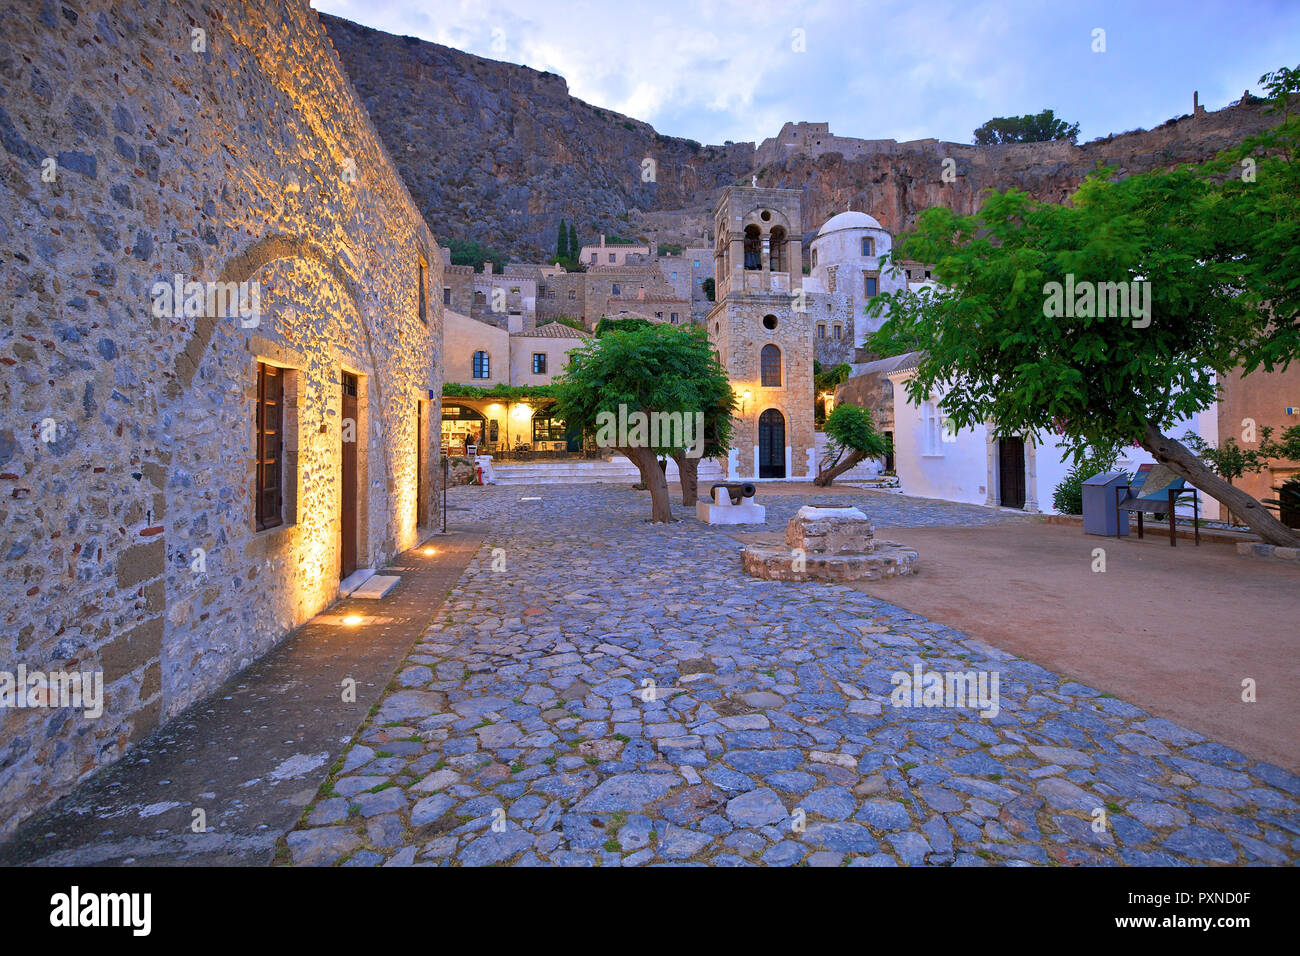 Church of Elkomenos Christos and Bell Tower in Platia Dsami Square, Monemvasia, Laconia, The Peloponnese, Greece, Southern Europe - Stock Image